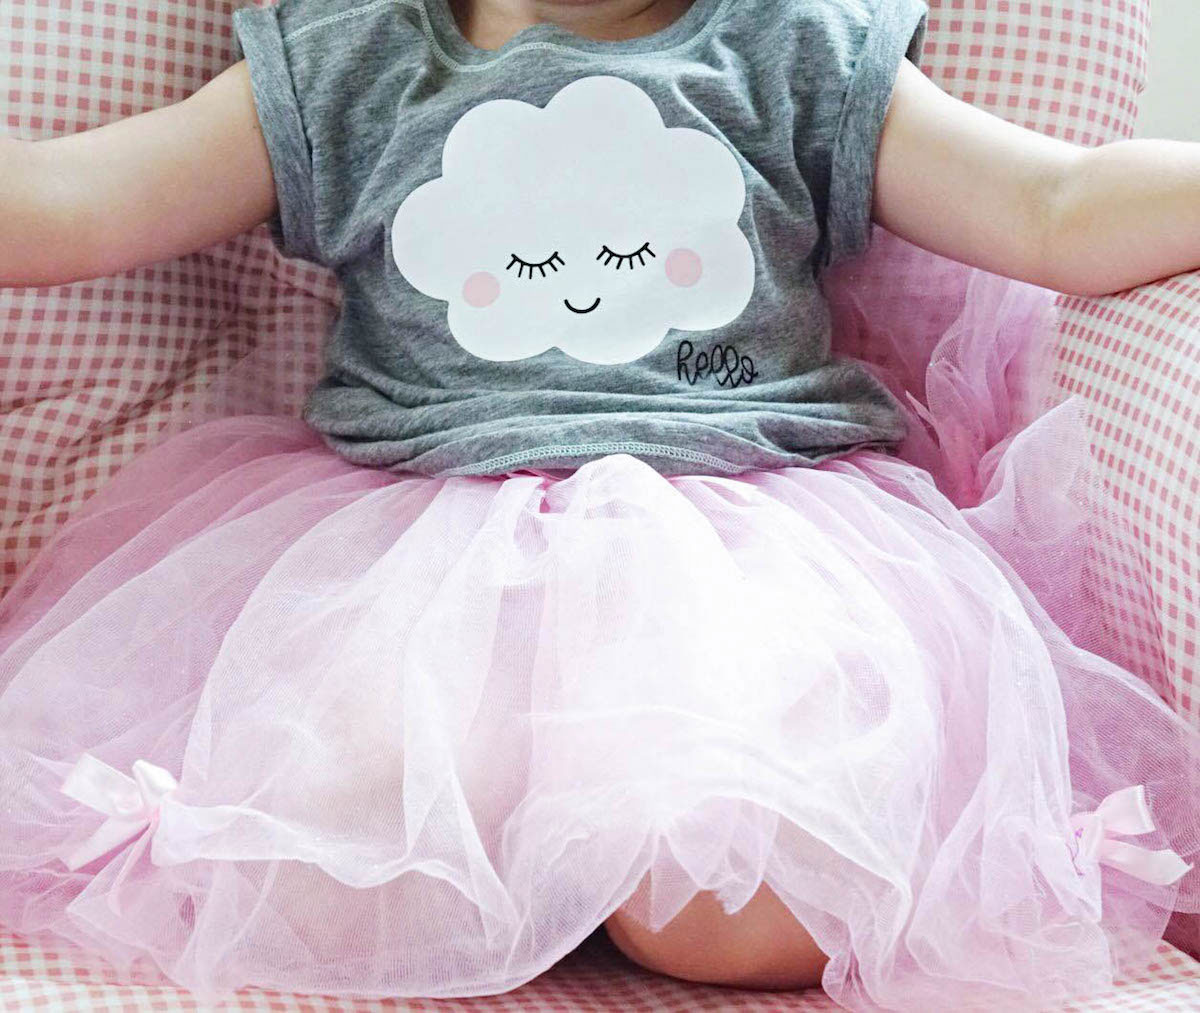 What a cute happy cloud tee for kids!